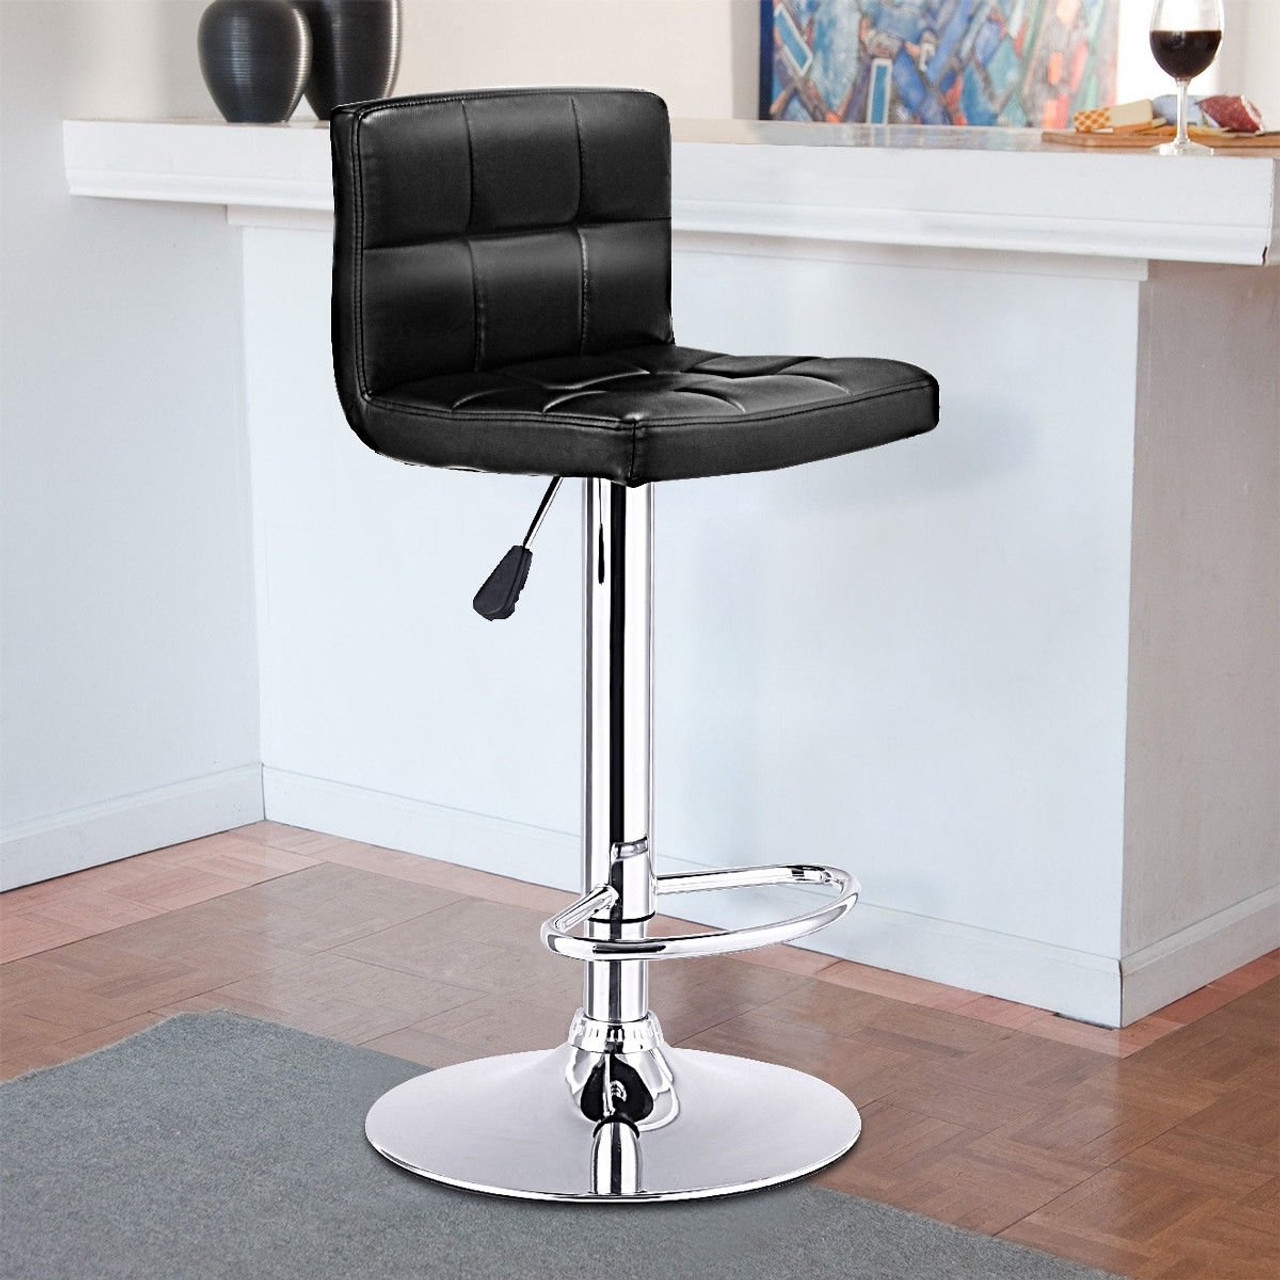 Picture of: Cw Hw65633bk 1 Pc Bar Stool Swivel Adjustable Pu Leather Barstools Bistro Pub Chair Black